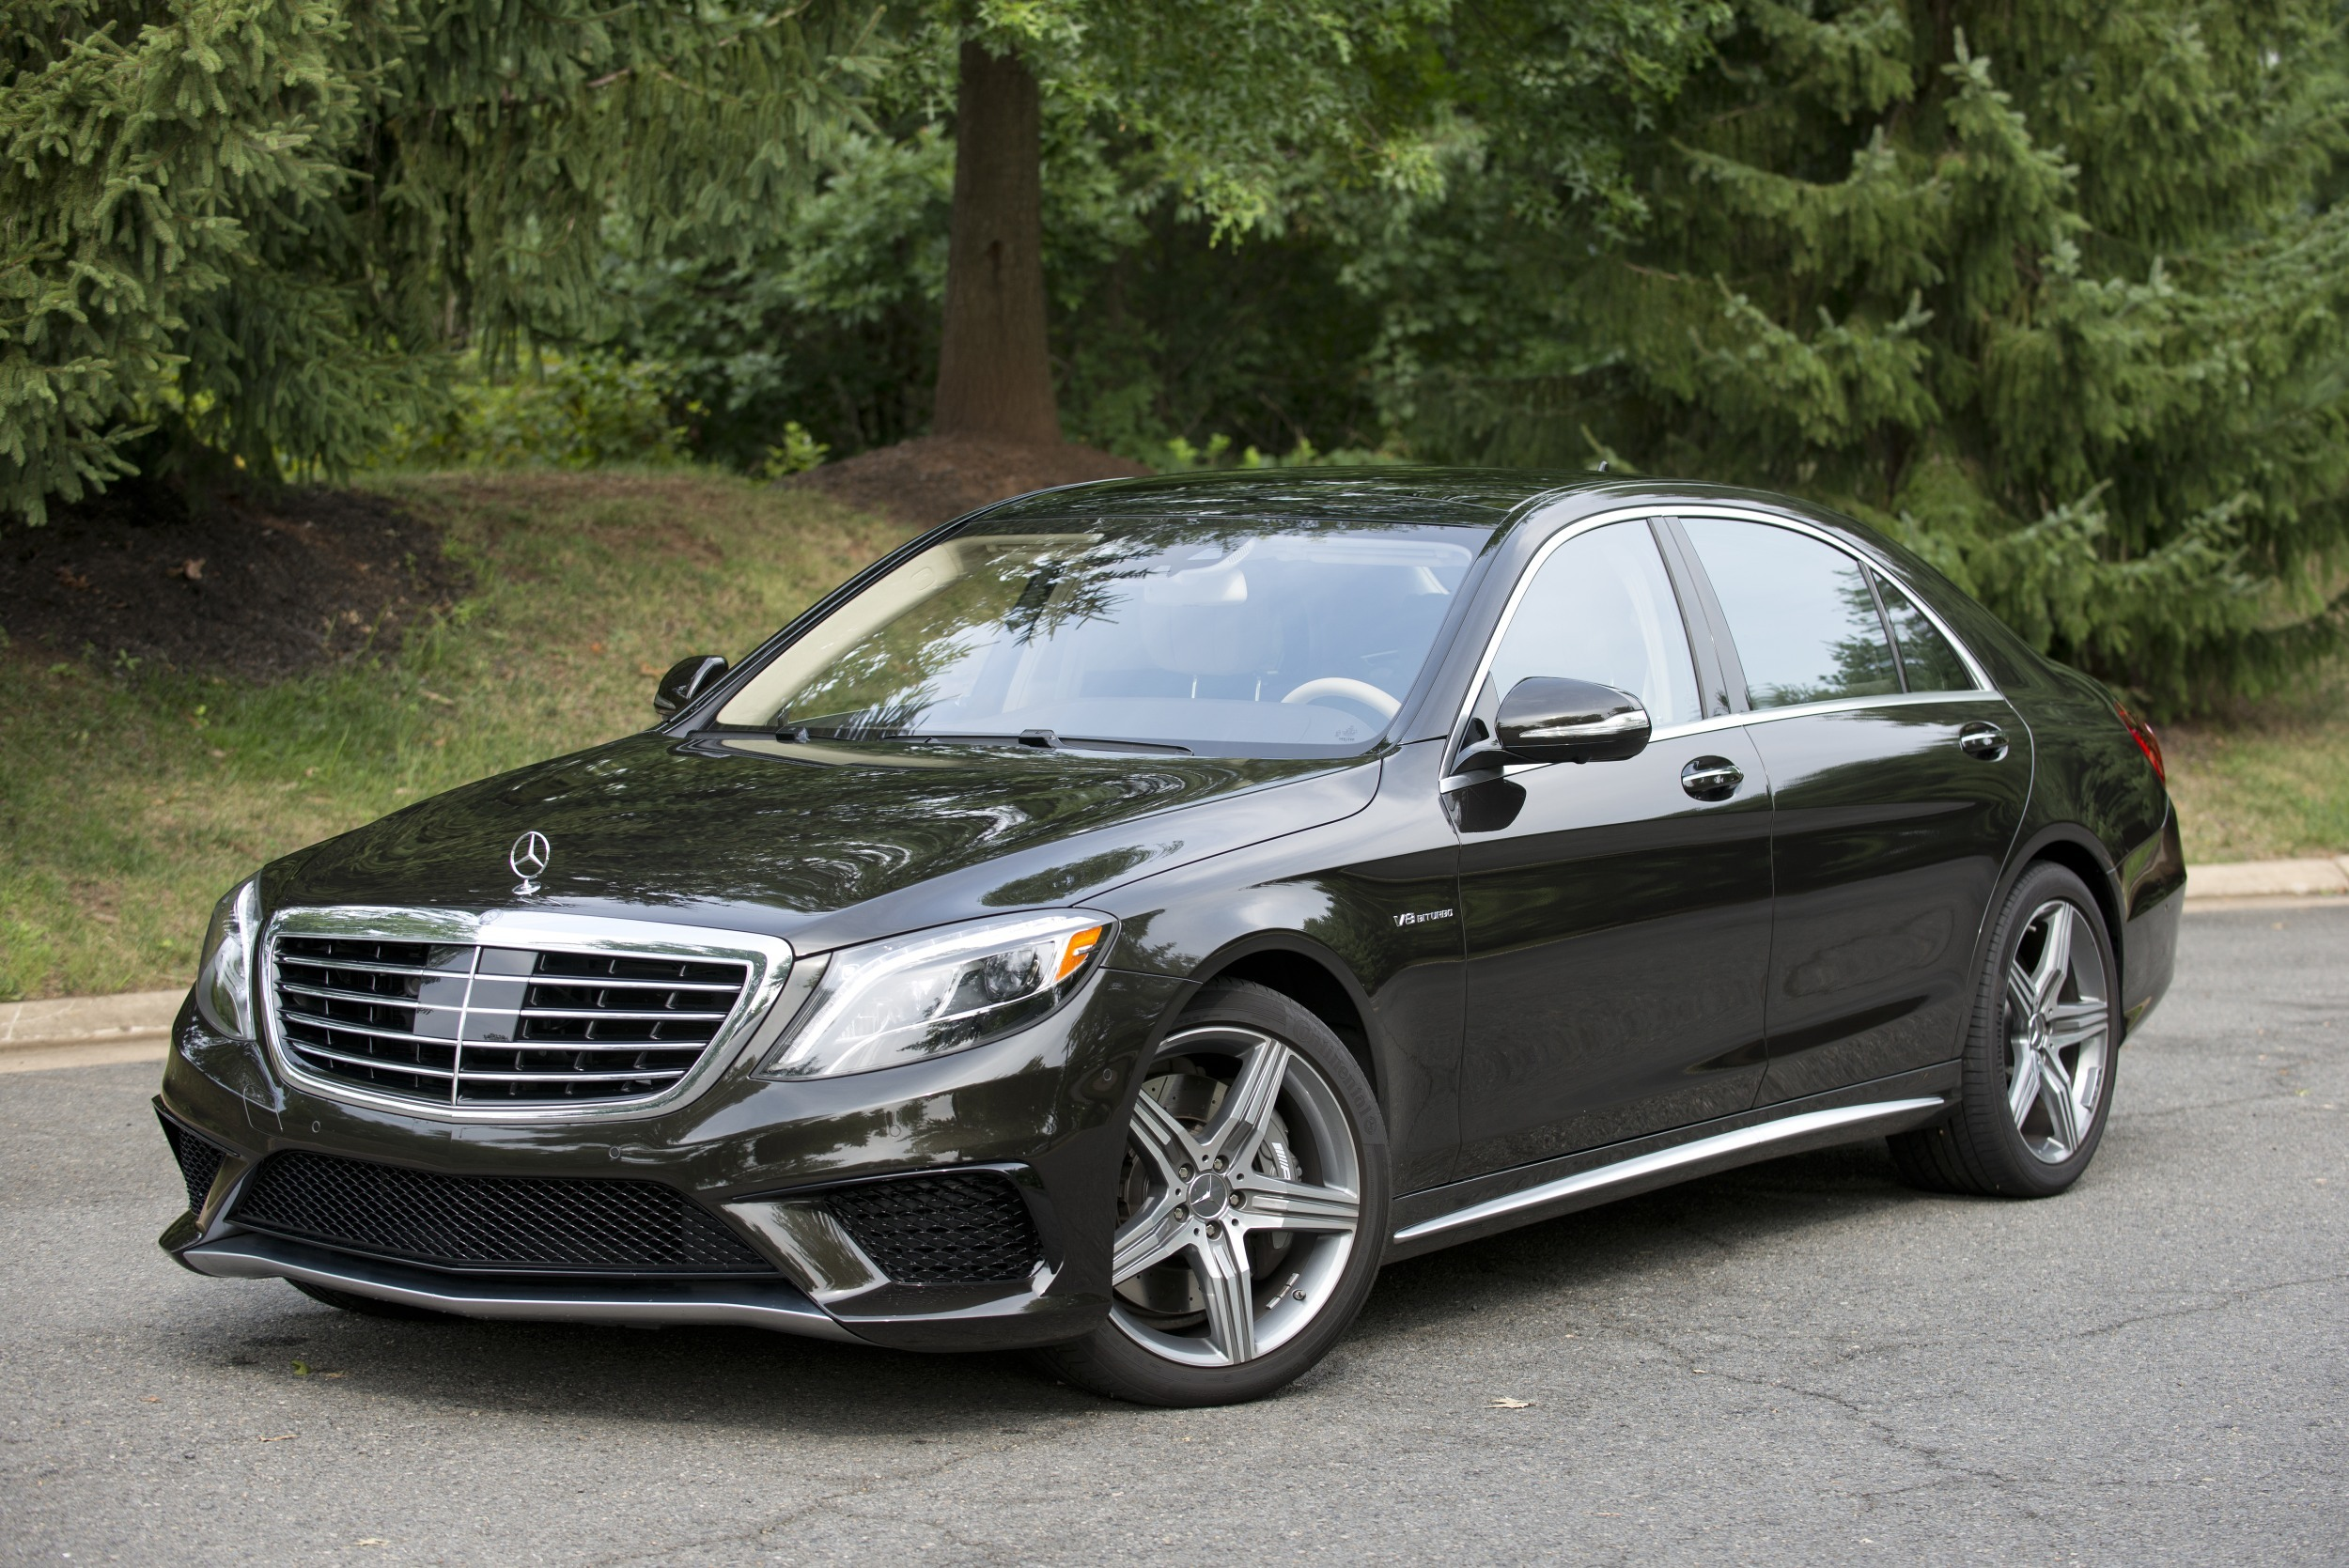 2014 mercedes benz s63 amg 4matic sedan quick spin photo for 2014 mercedes benz s63